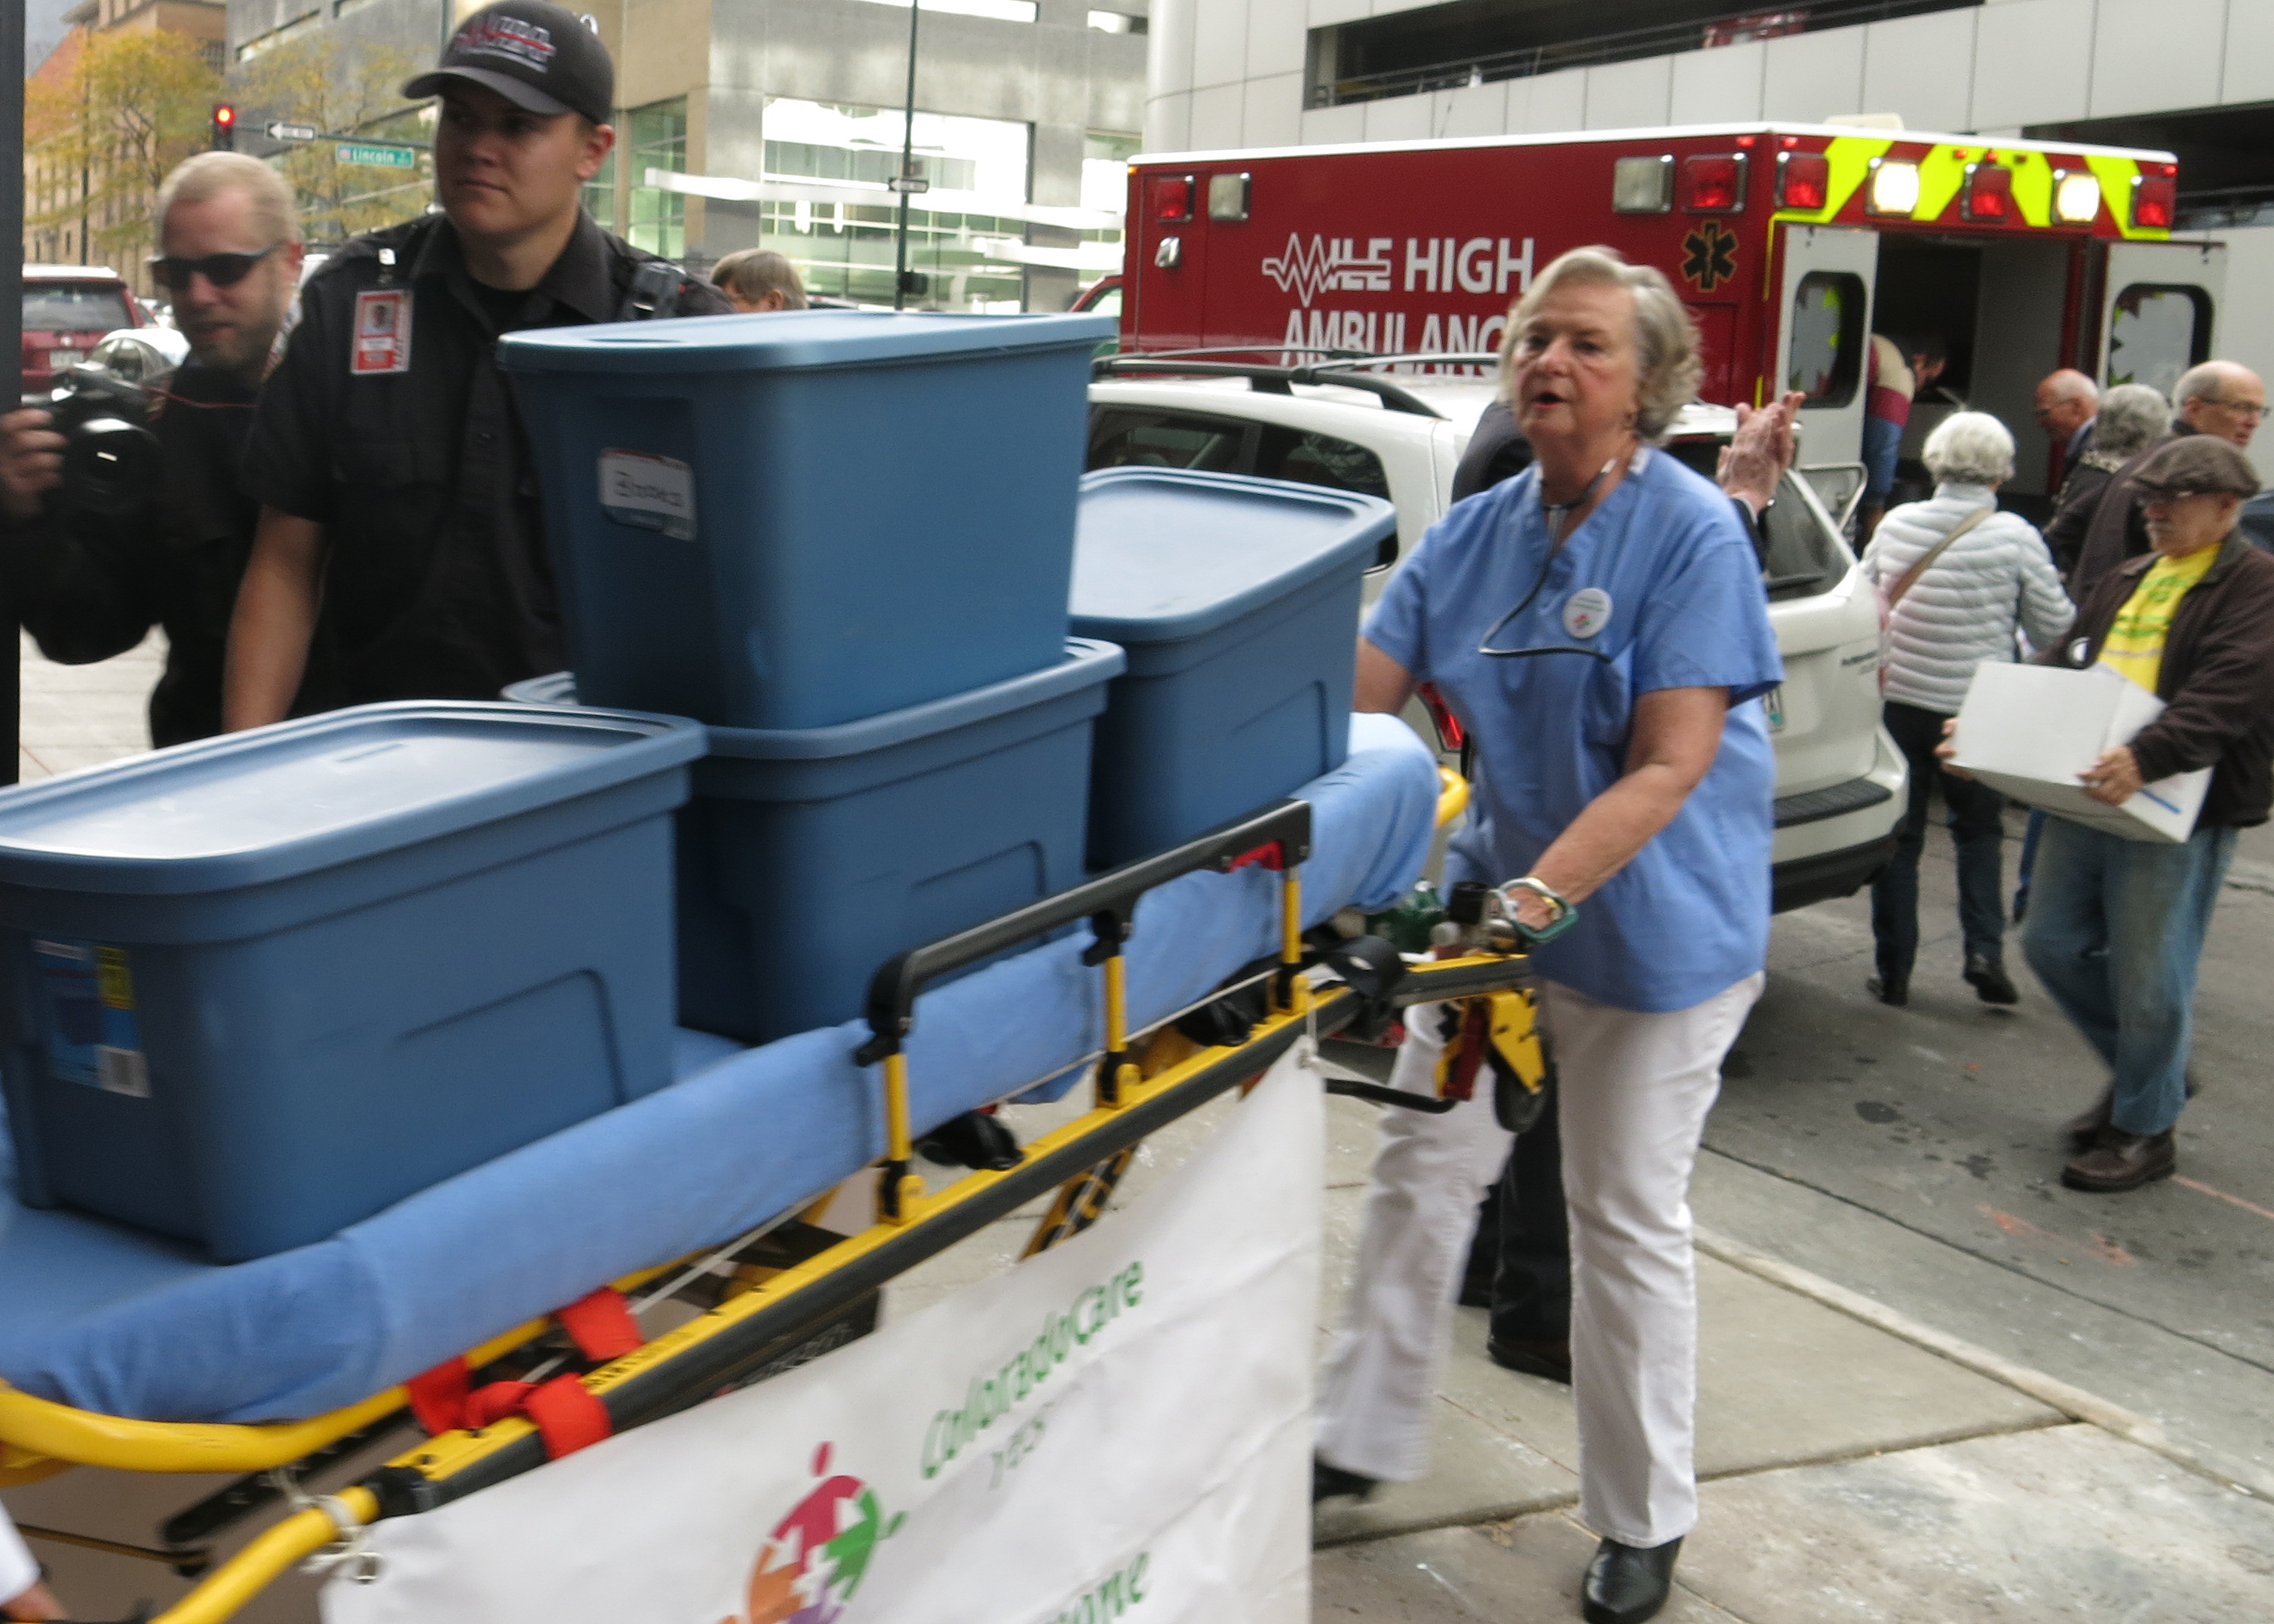 Photo: Universal Healthcare Ballot Delivery Ambulance